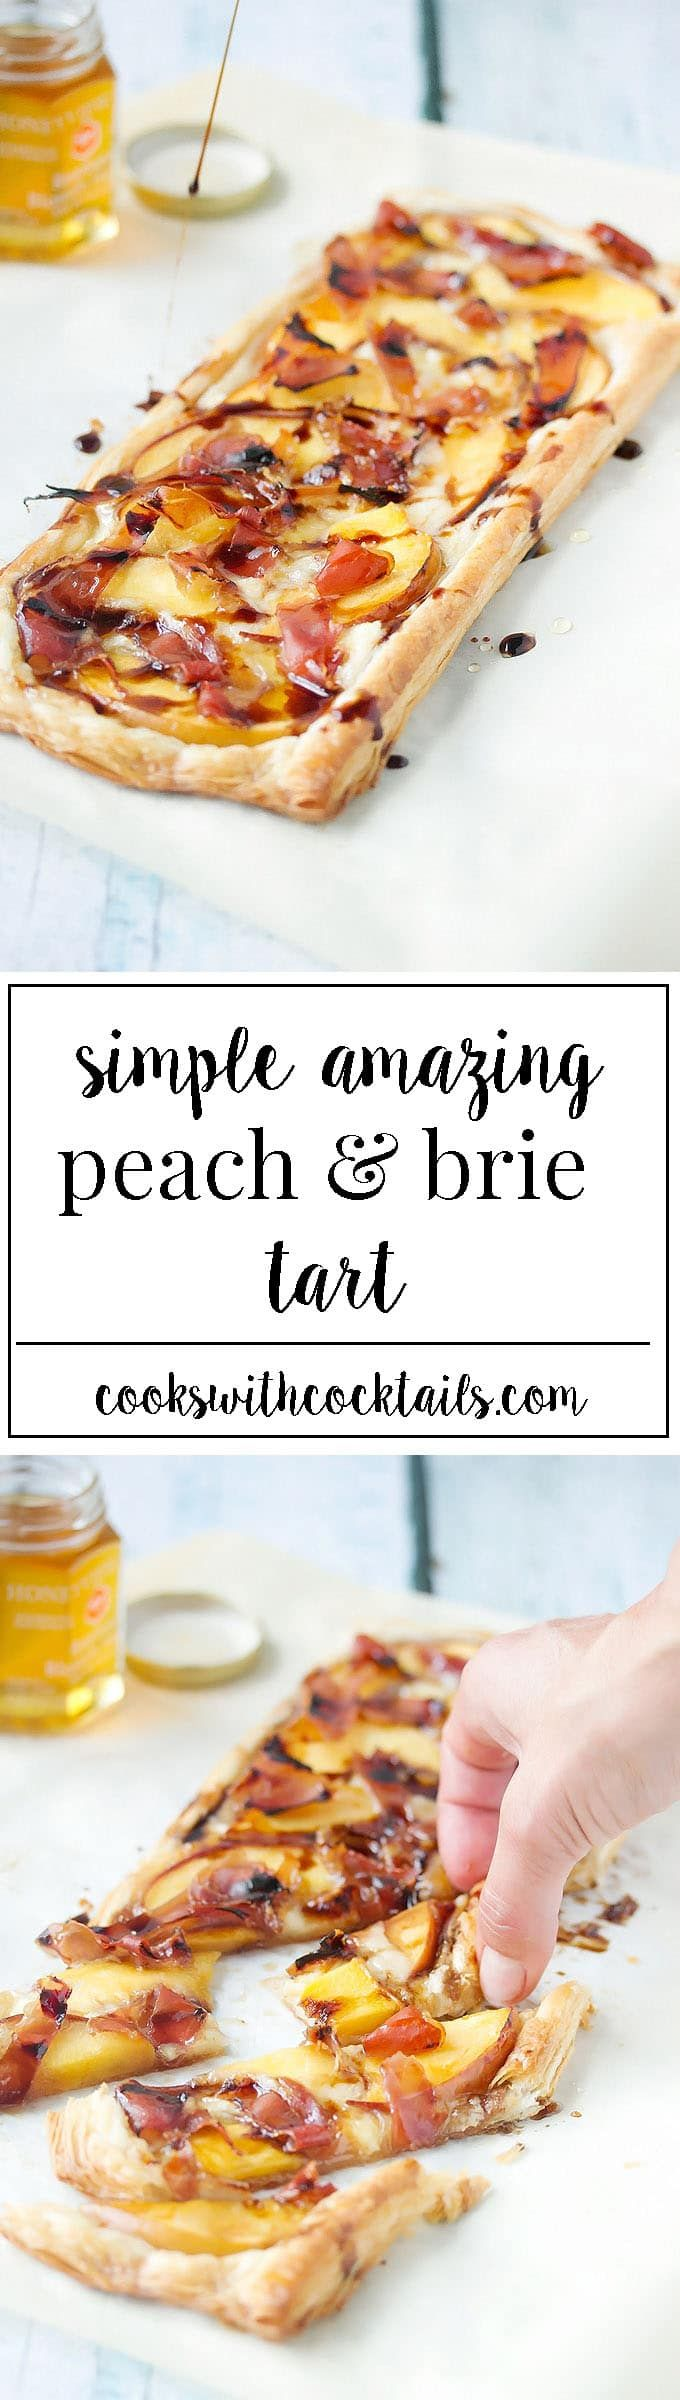 A sweet and savory puff pastry tart baked with peaches, brie and prosciutto then drizzled in honey and a syrupy balsamic reduction. Its so simple and totally amazing. #puffpastrytart #tartrecipe #peachtart